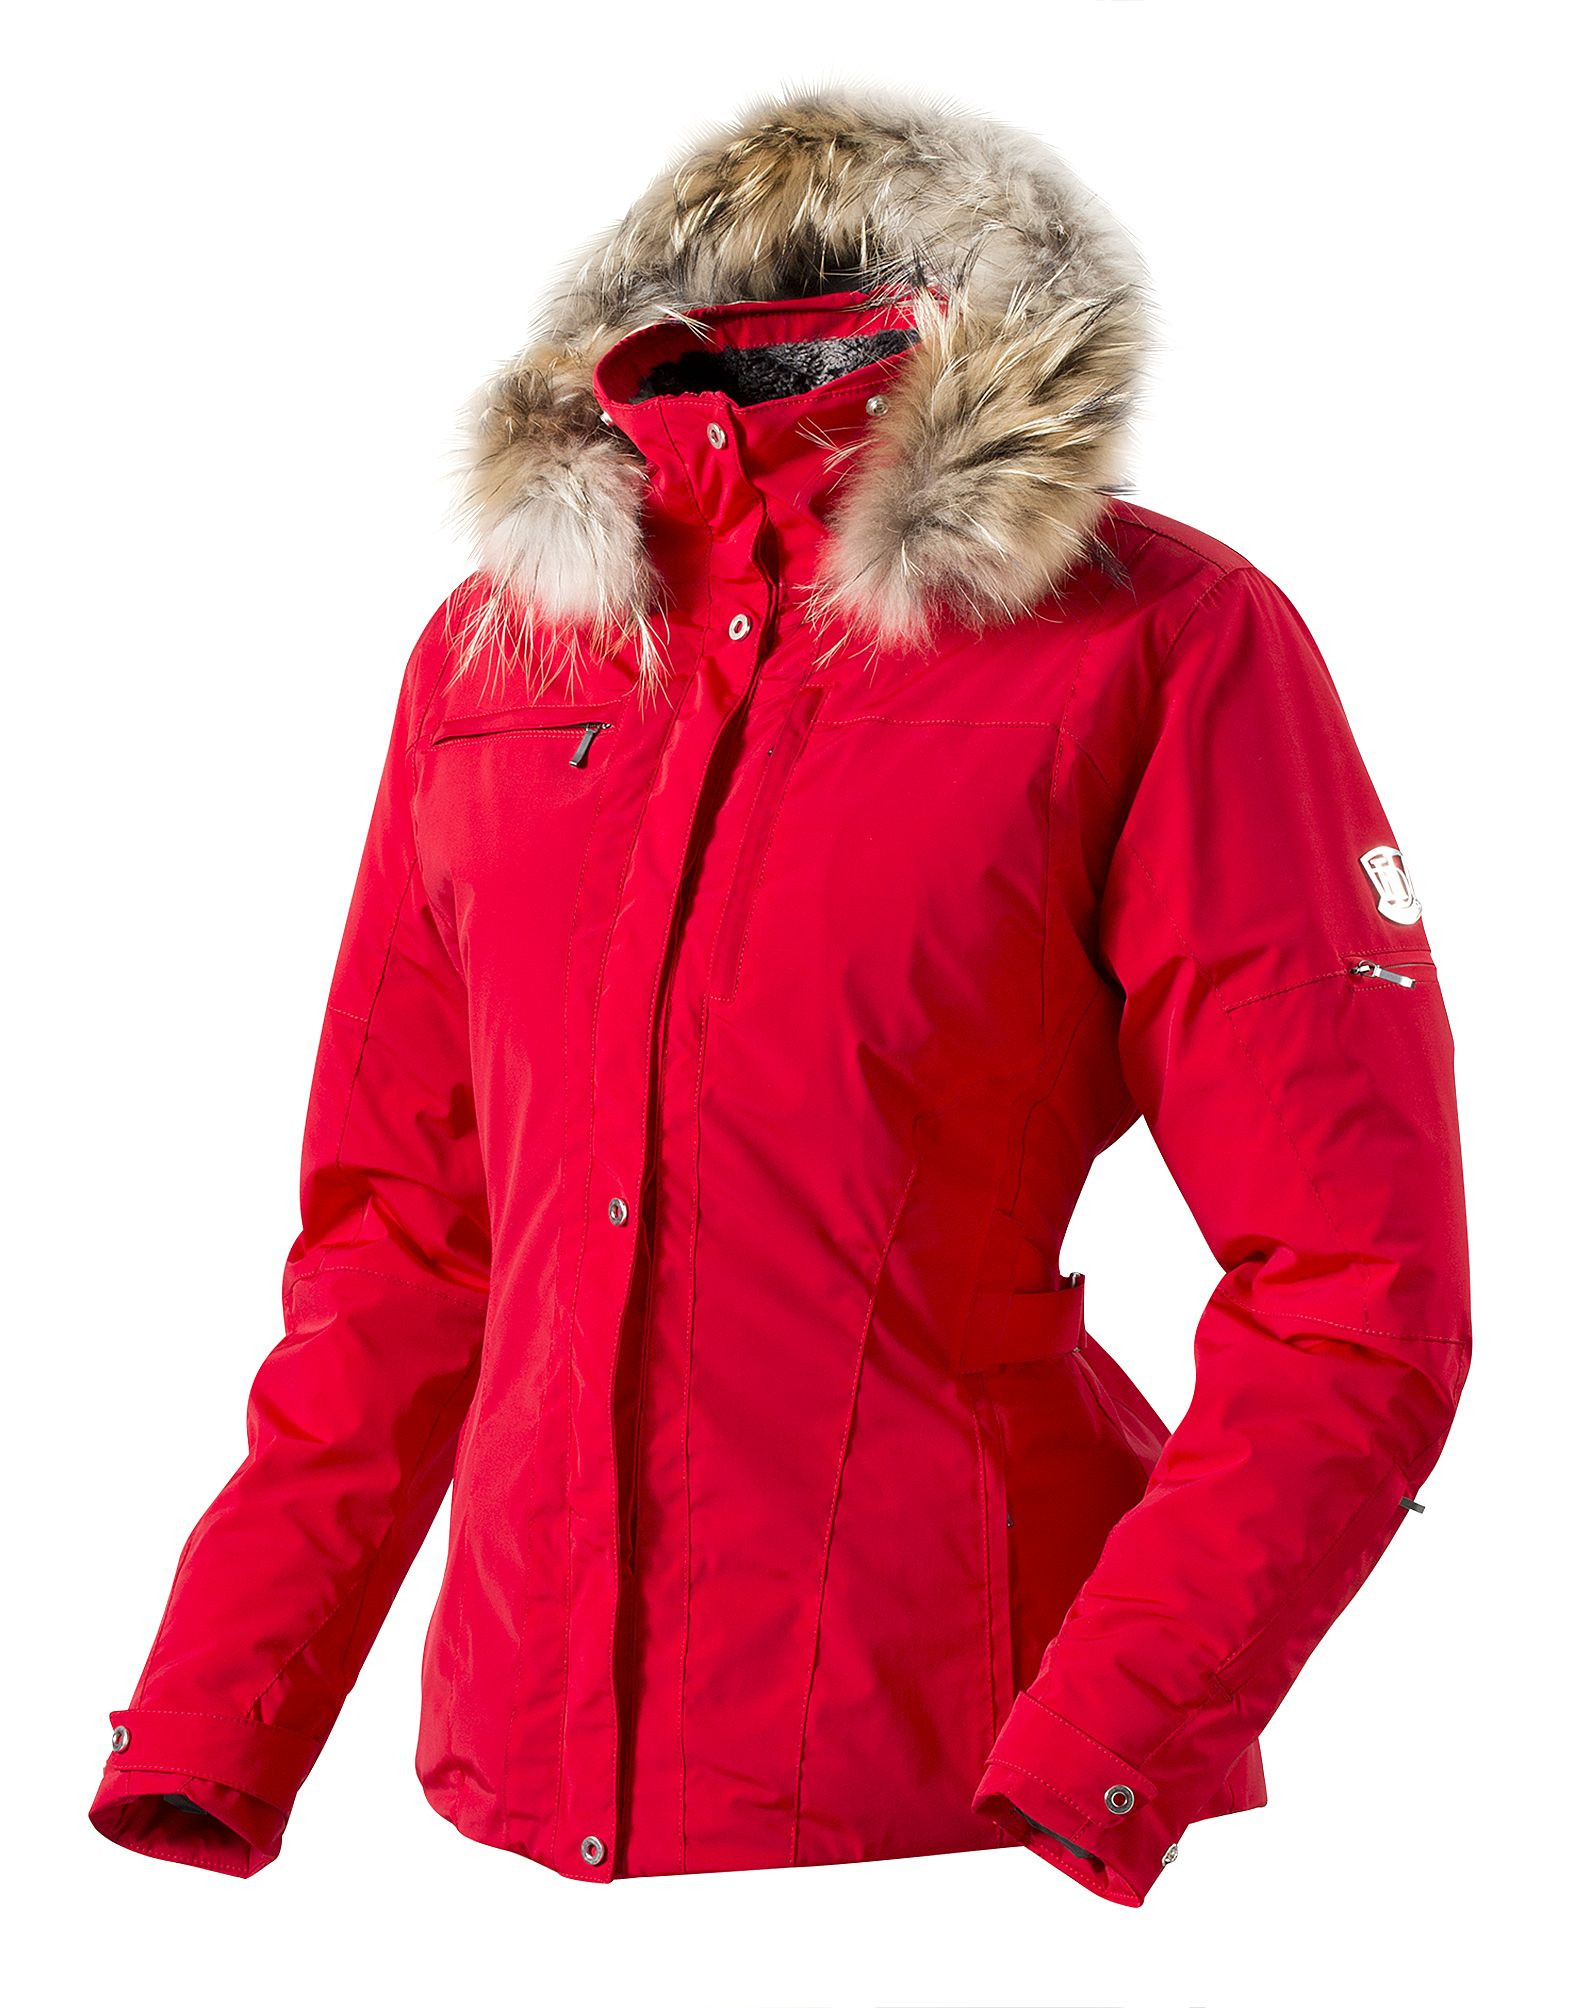 782a08c5c8 Buying Ski Jackets Women